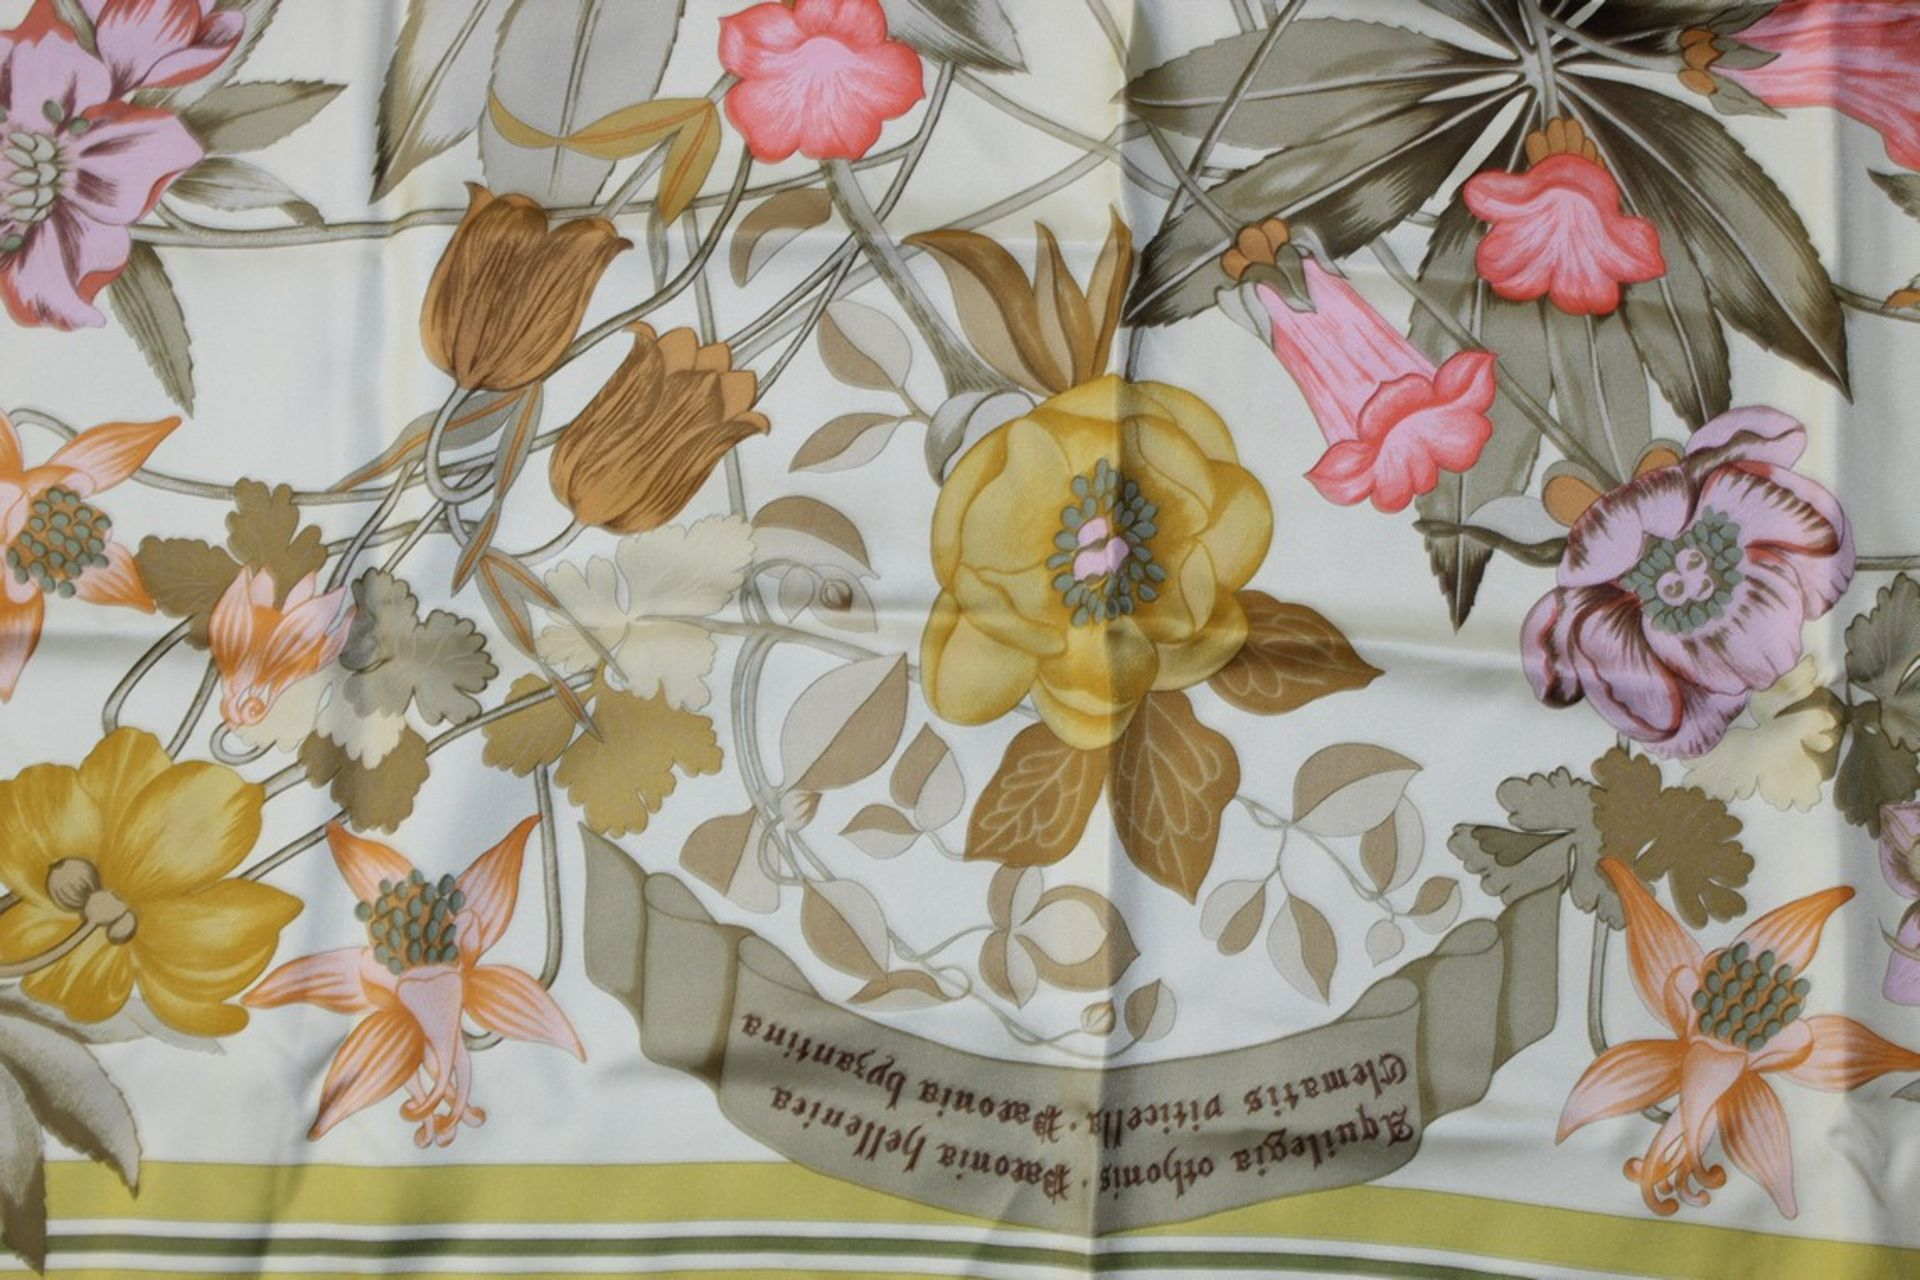 RRP £680 Hermes 100% Twill Silk Scarf, Aquilegia Othonis By Niki Goulandris, Yellow/Green, 90X90Cm - Image 2 of 3